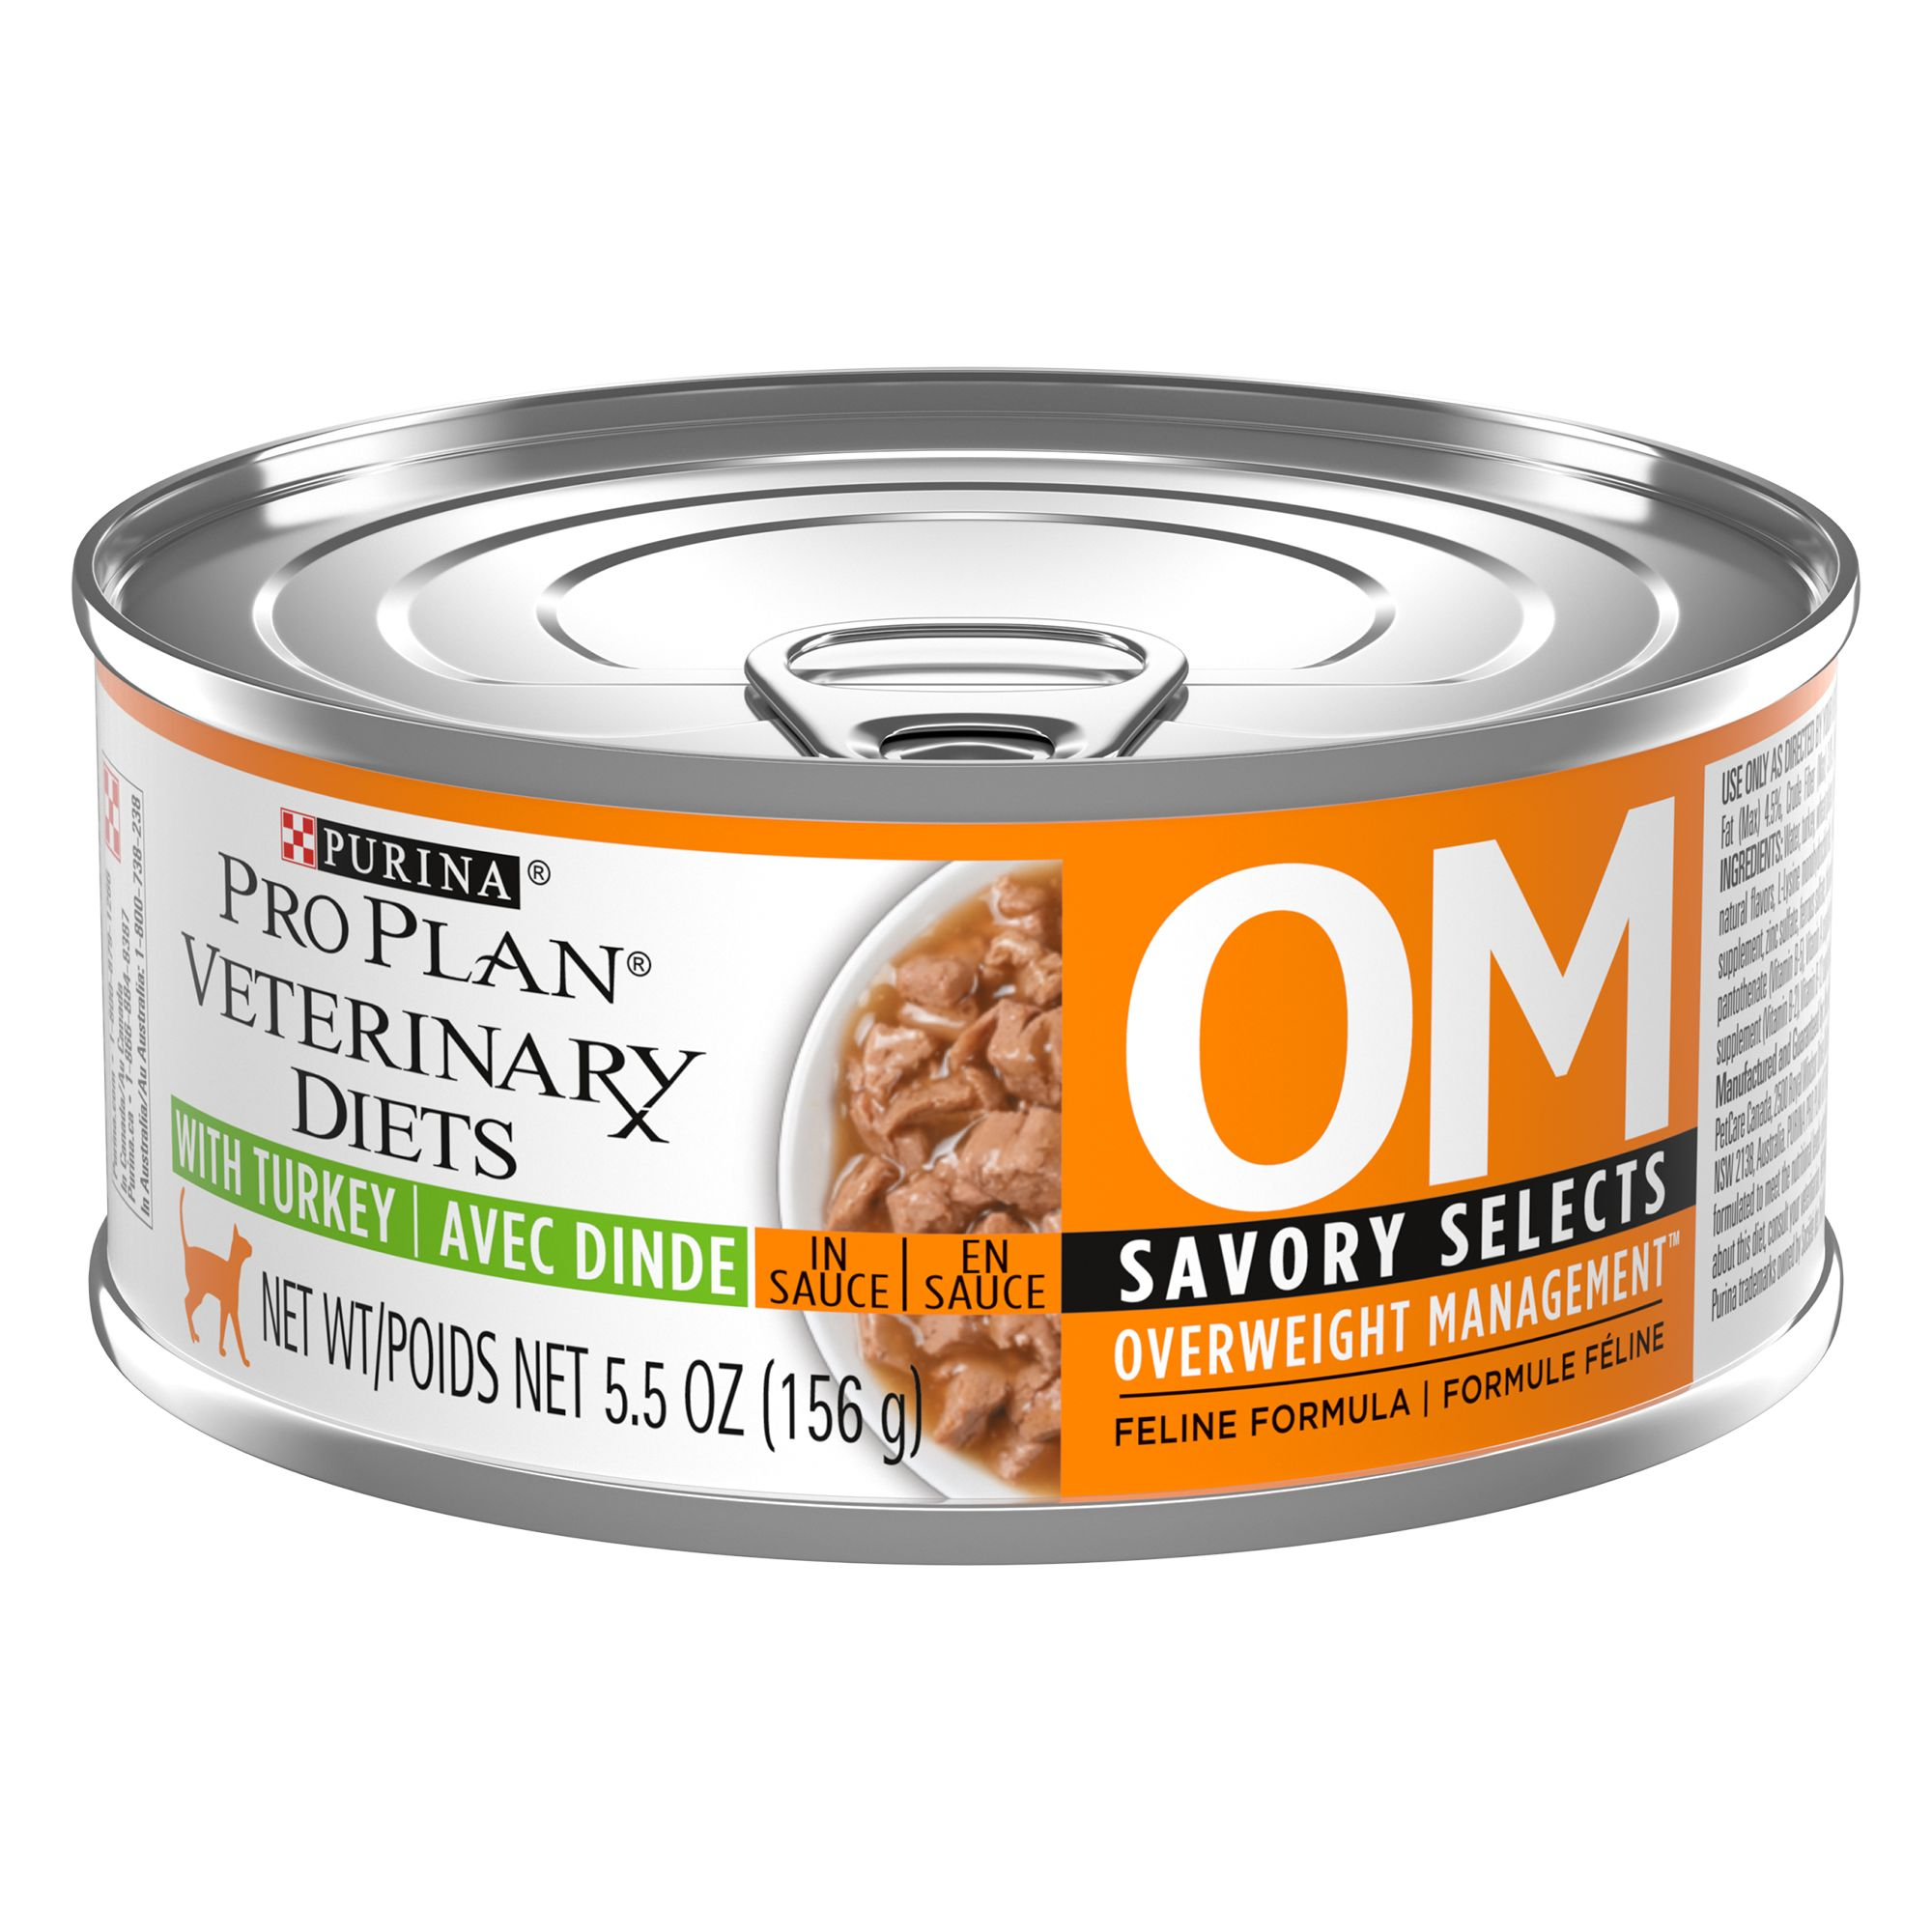 Purina Pro Plan Veterinary Diets Om Overwieght Management Cat Food Size 5.5 Oz